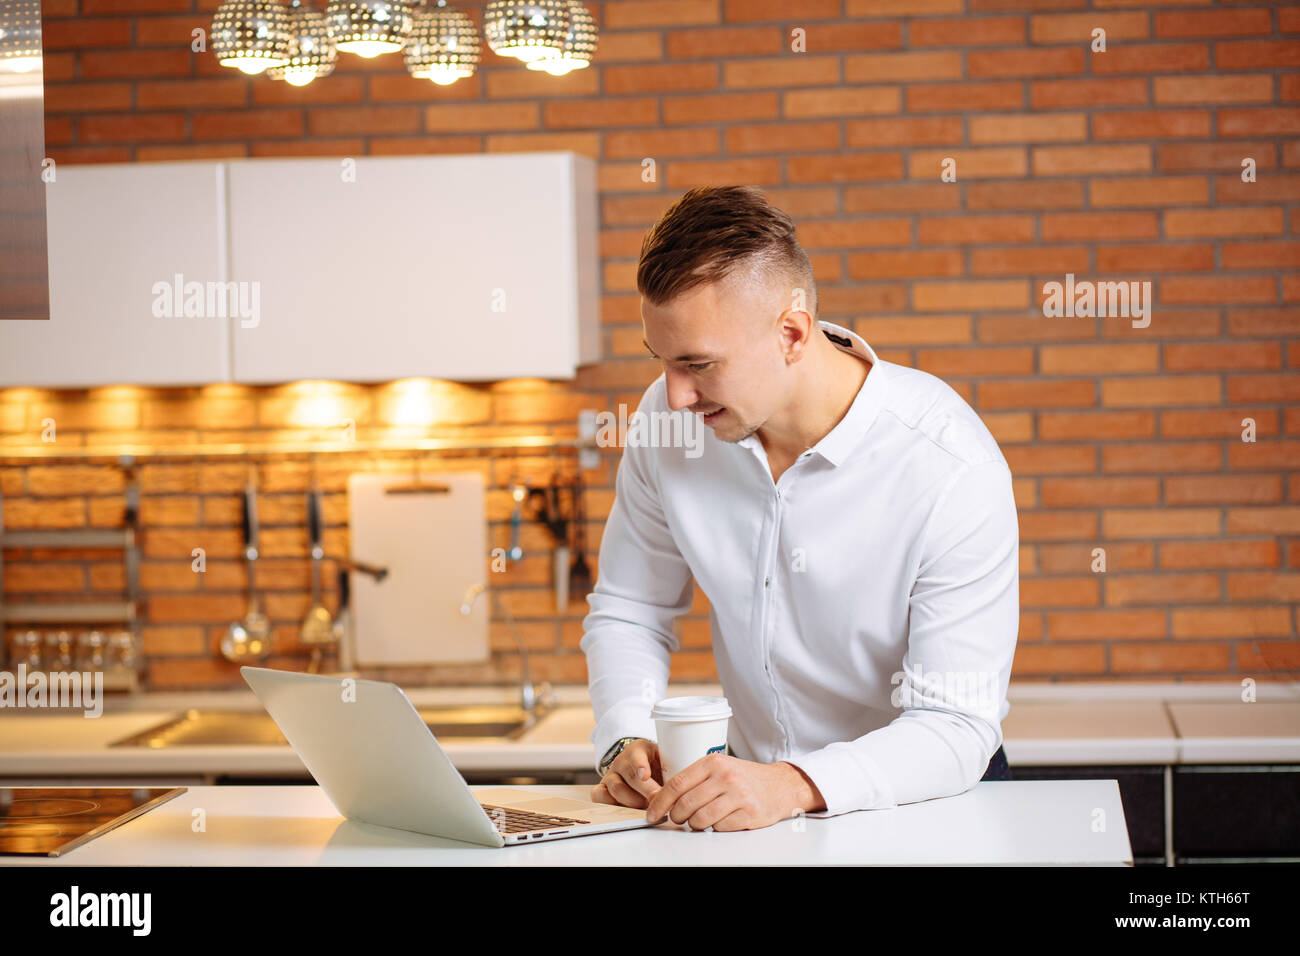 man working at home on some project, sitting at white table looking at laptop - Stock Image